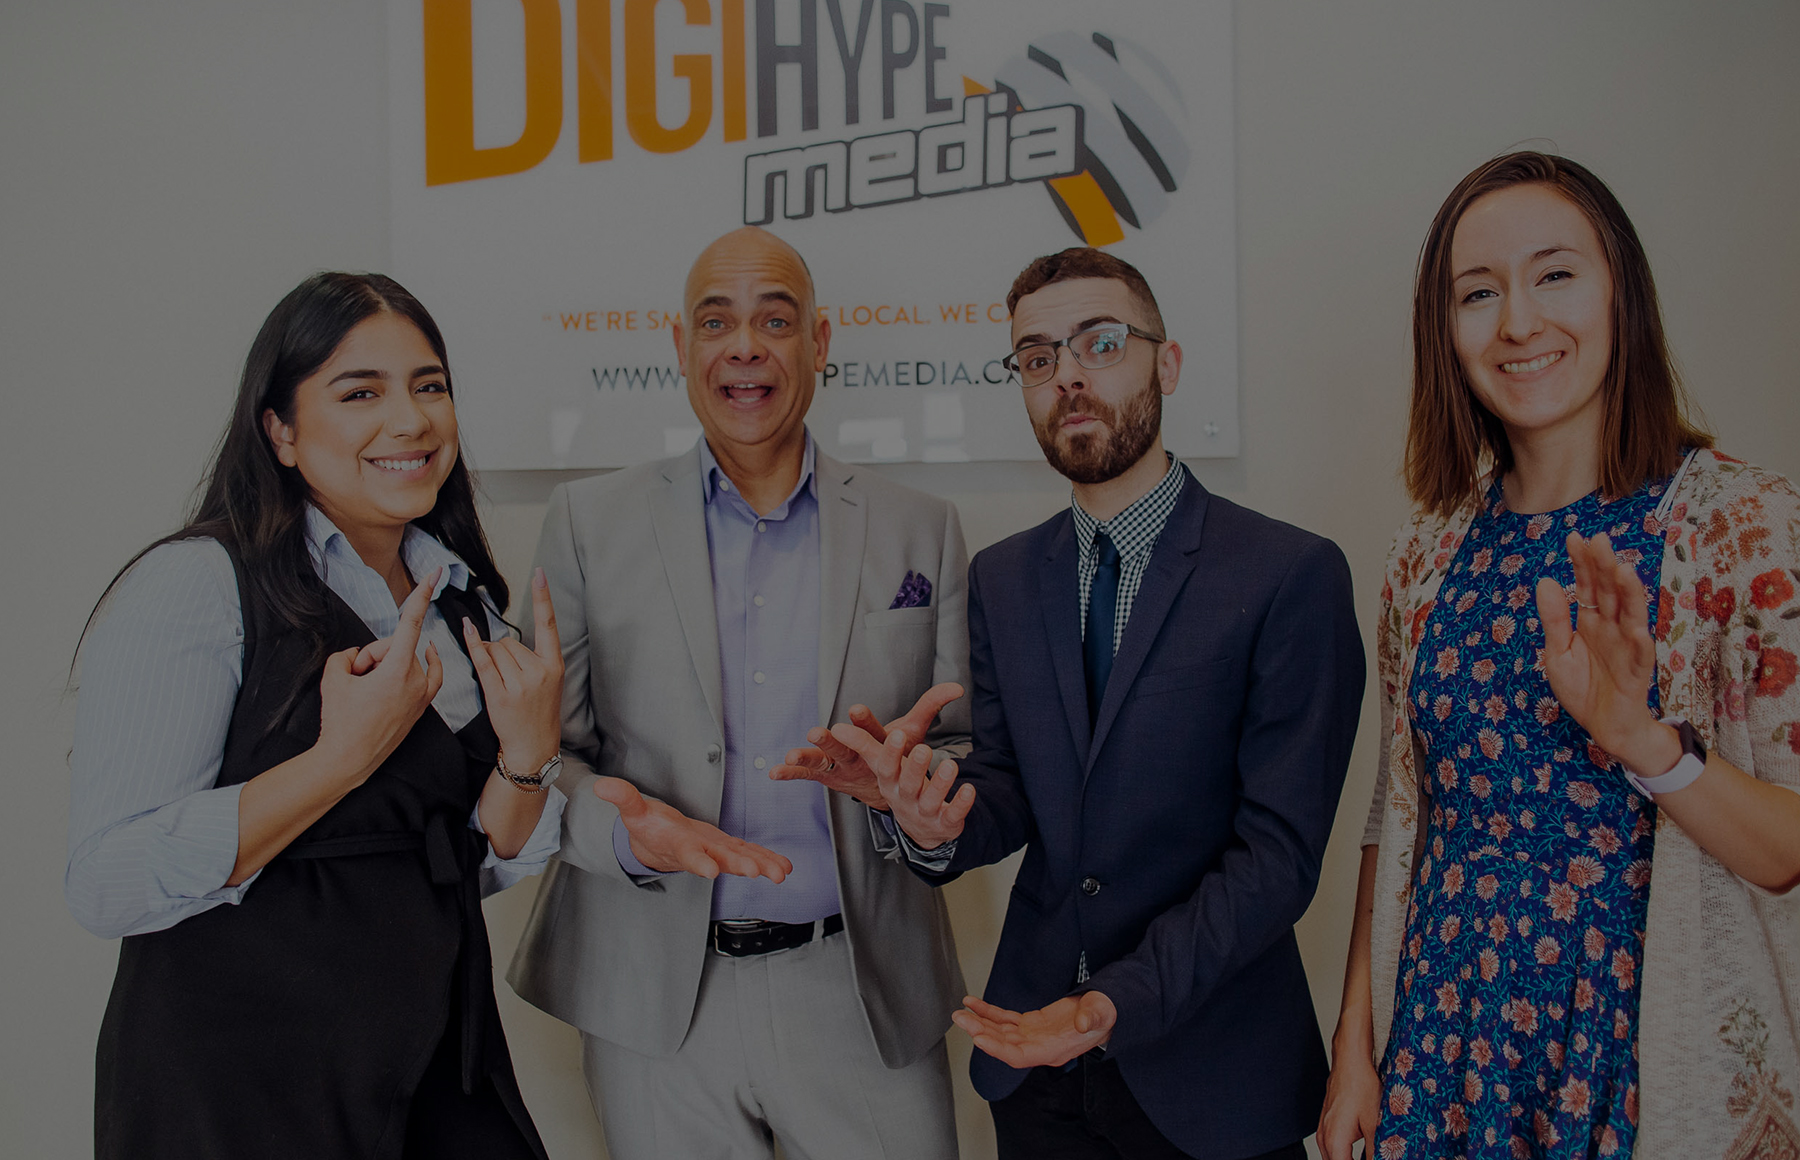 About DigiHype Media Marketing Agency in Mississauga